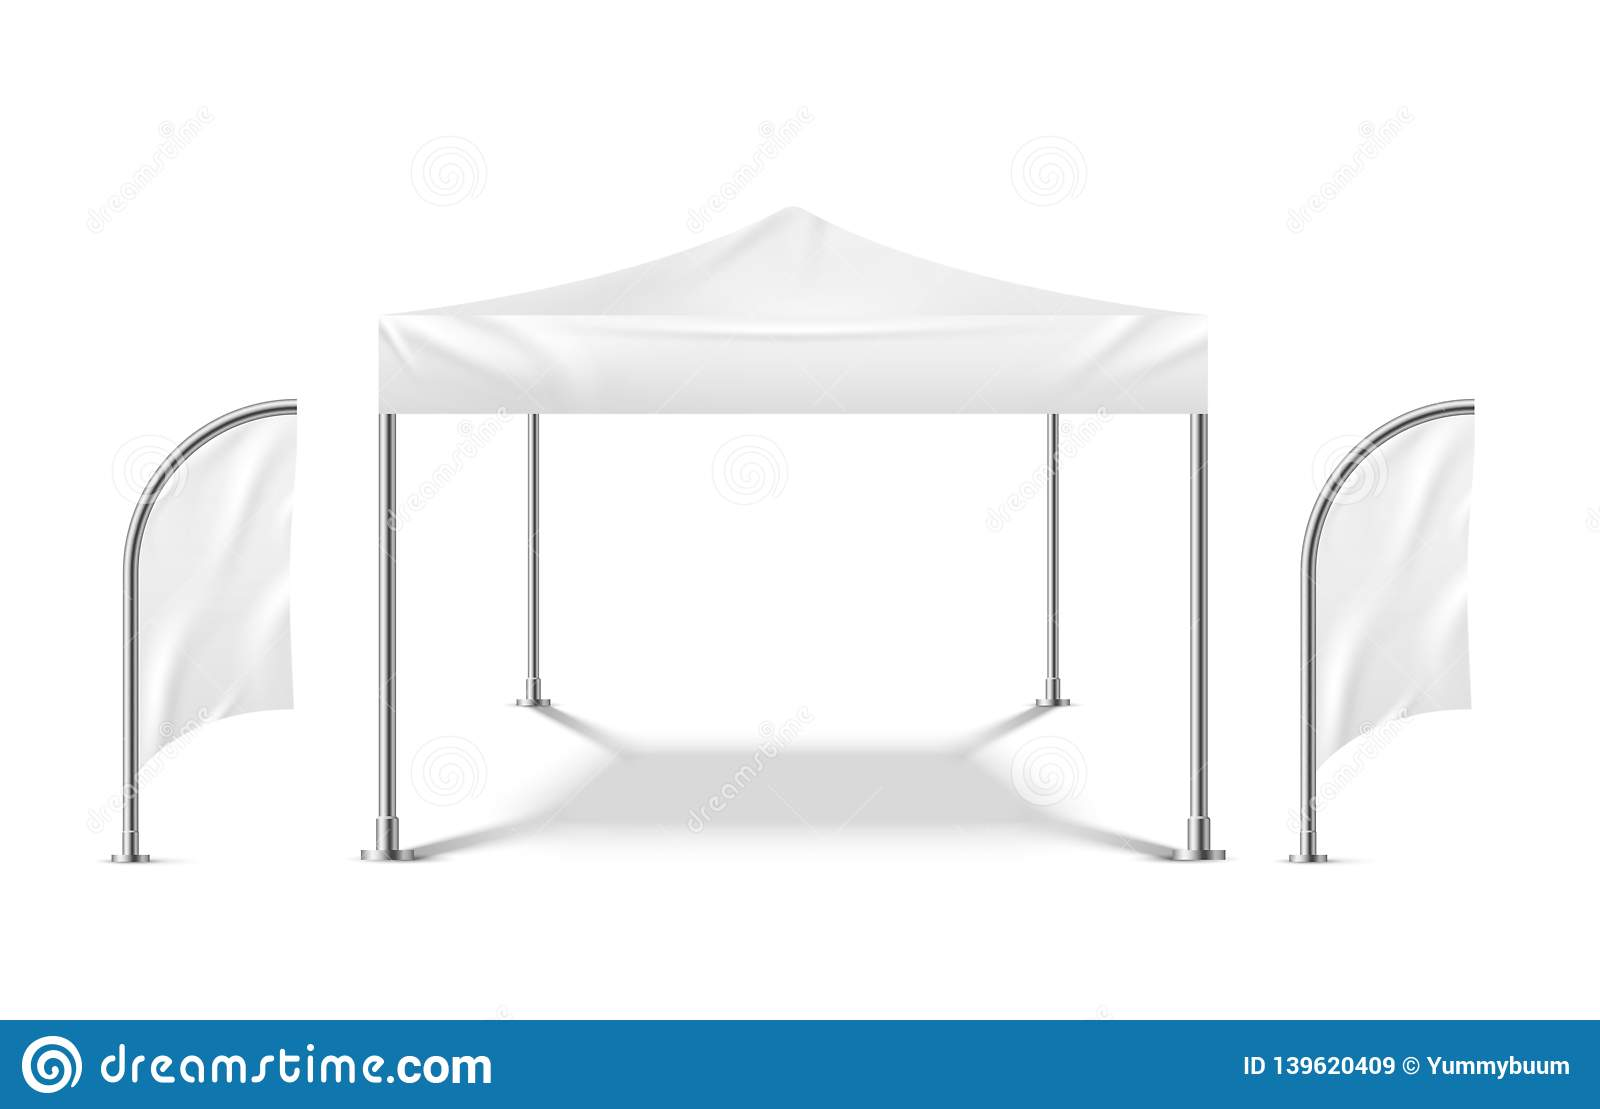 White tent with flags. Promo marquee mockup beach event outdoor material pavilion mobile camping party tent template